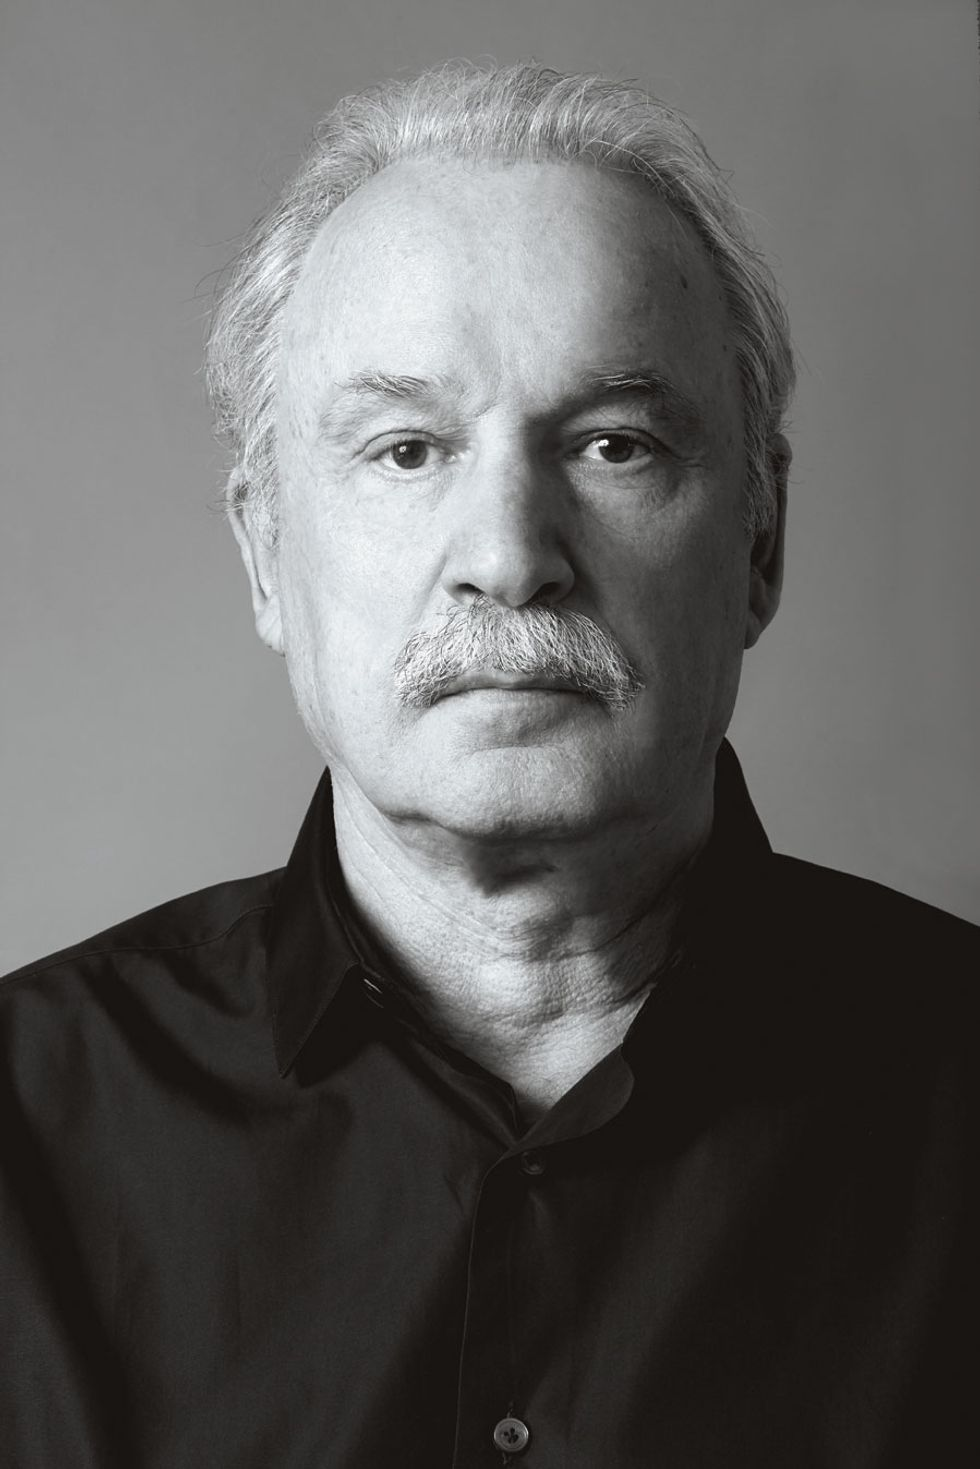 Giorgio Moroder: The Sound